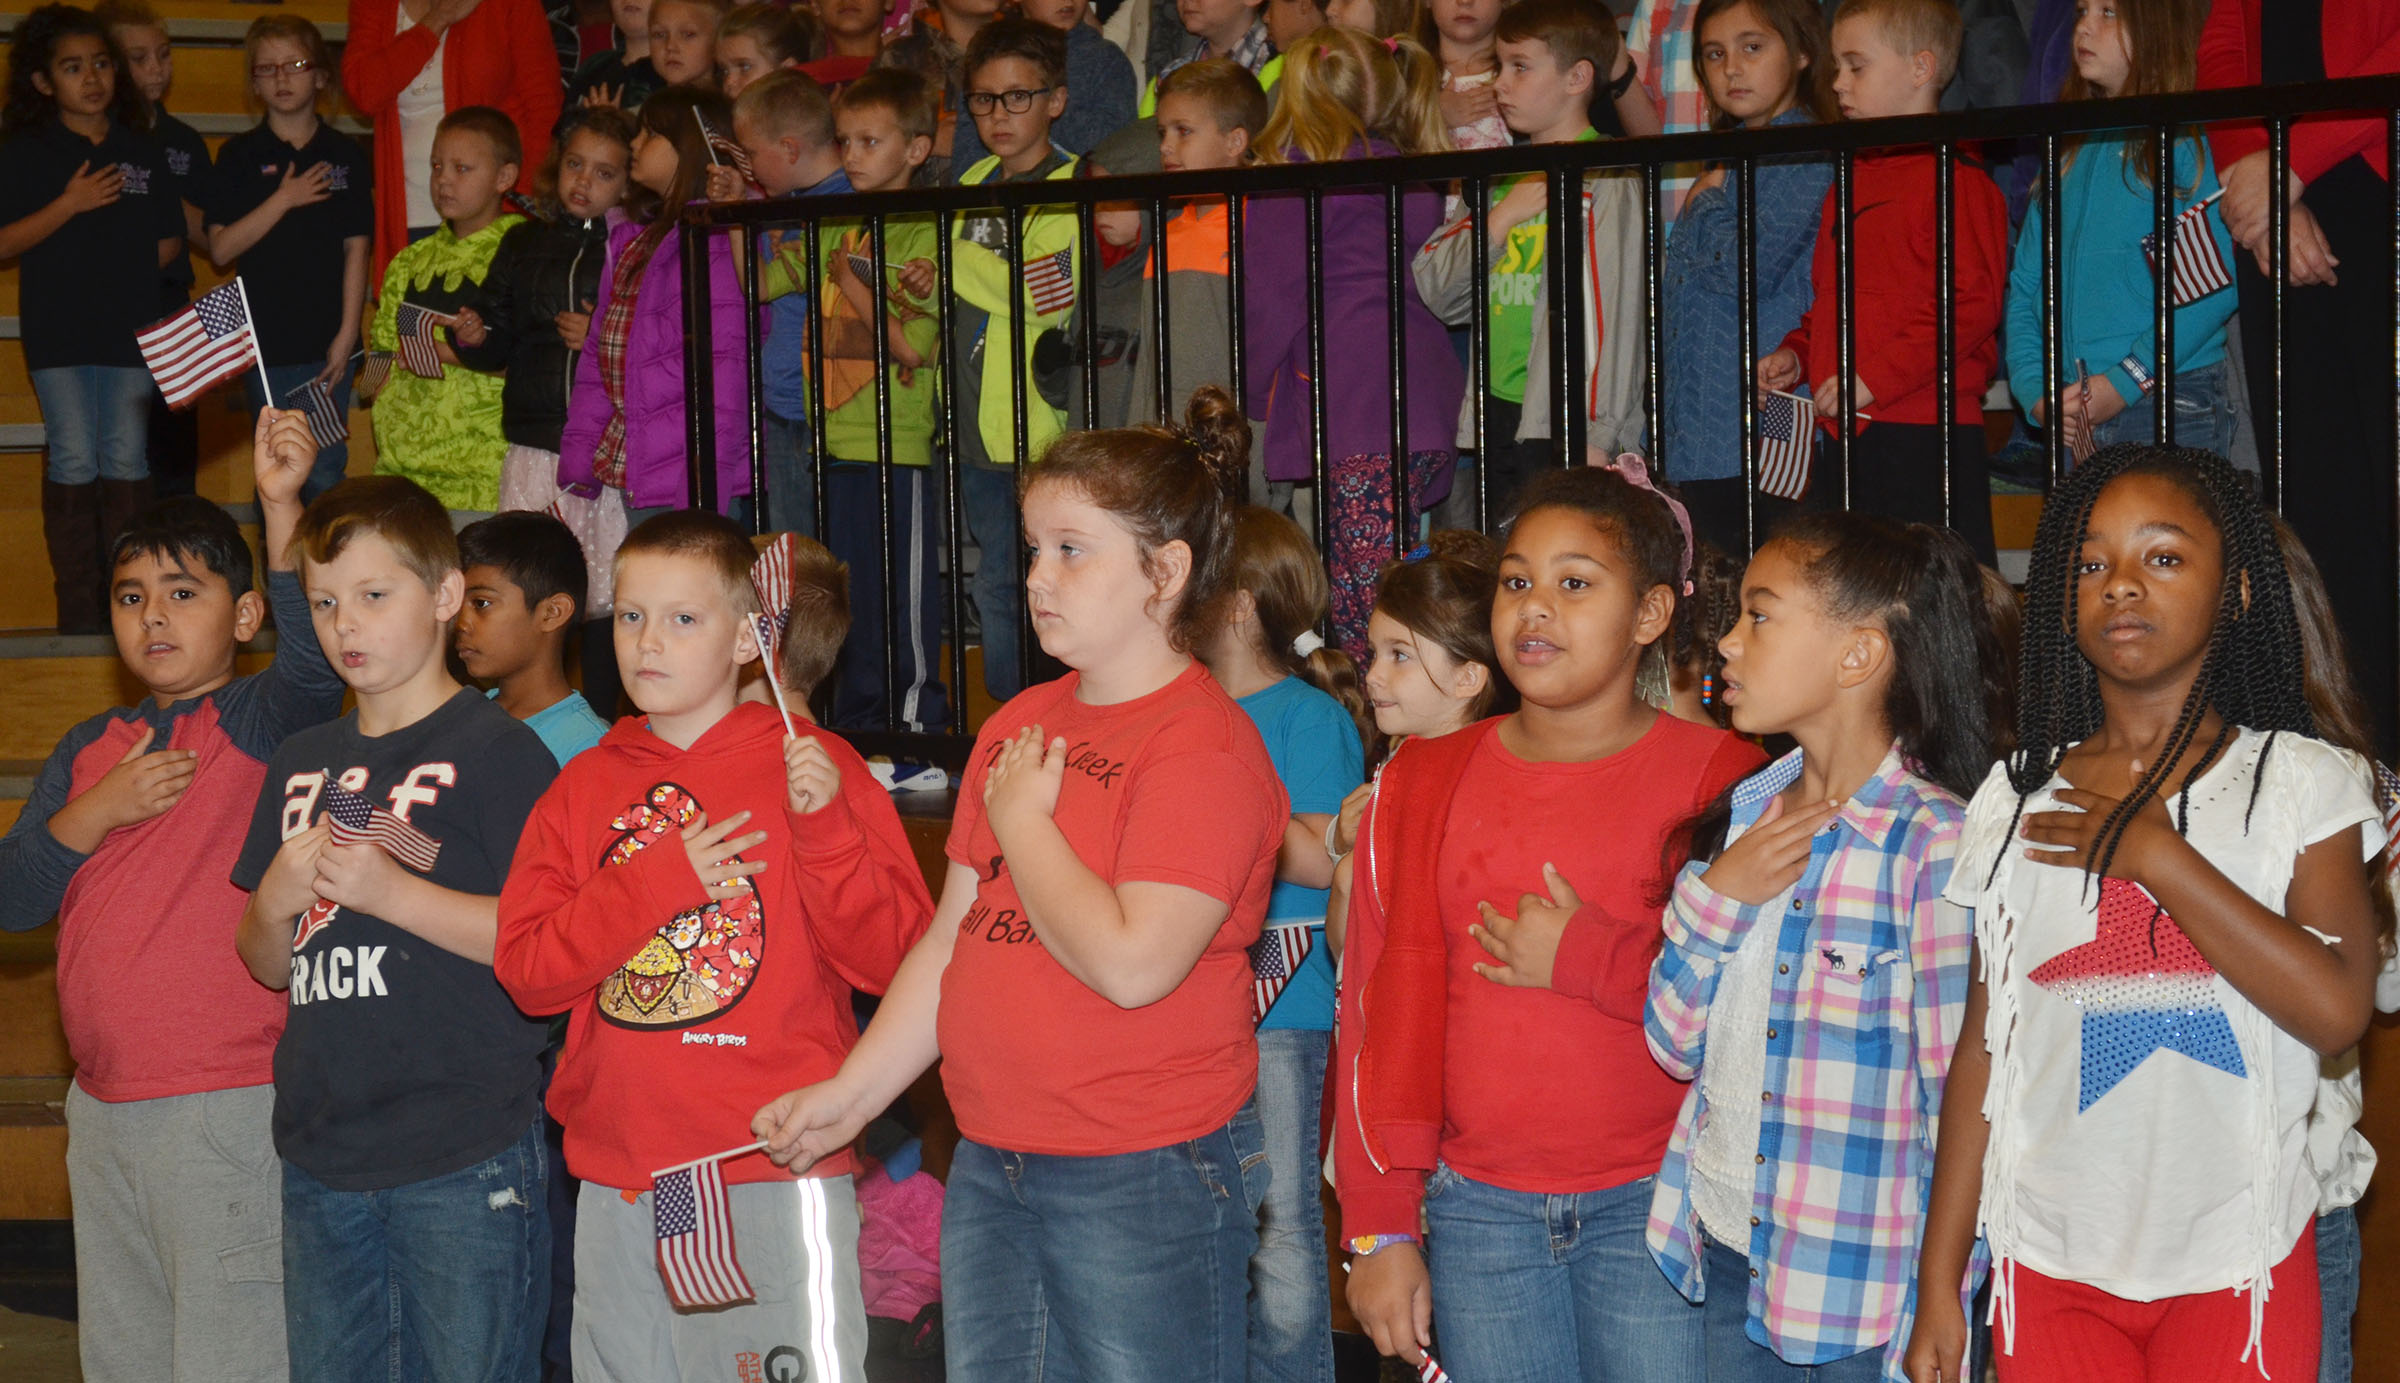 CES students place their hands on the hearts as they hear the National Anthem.